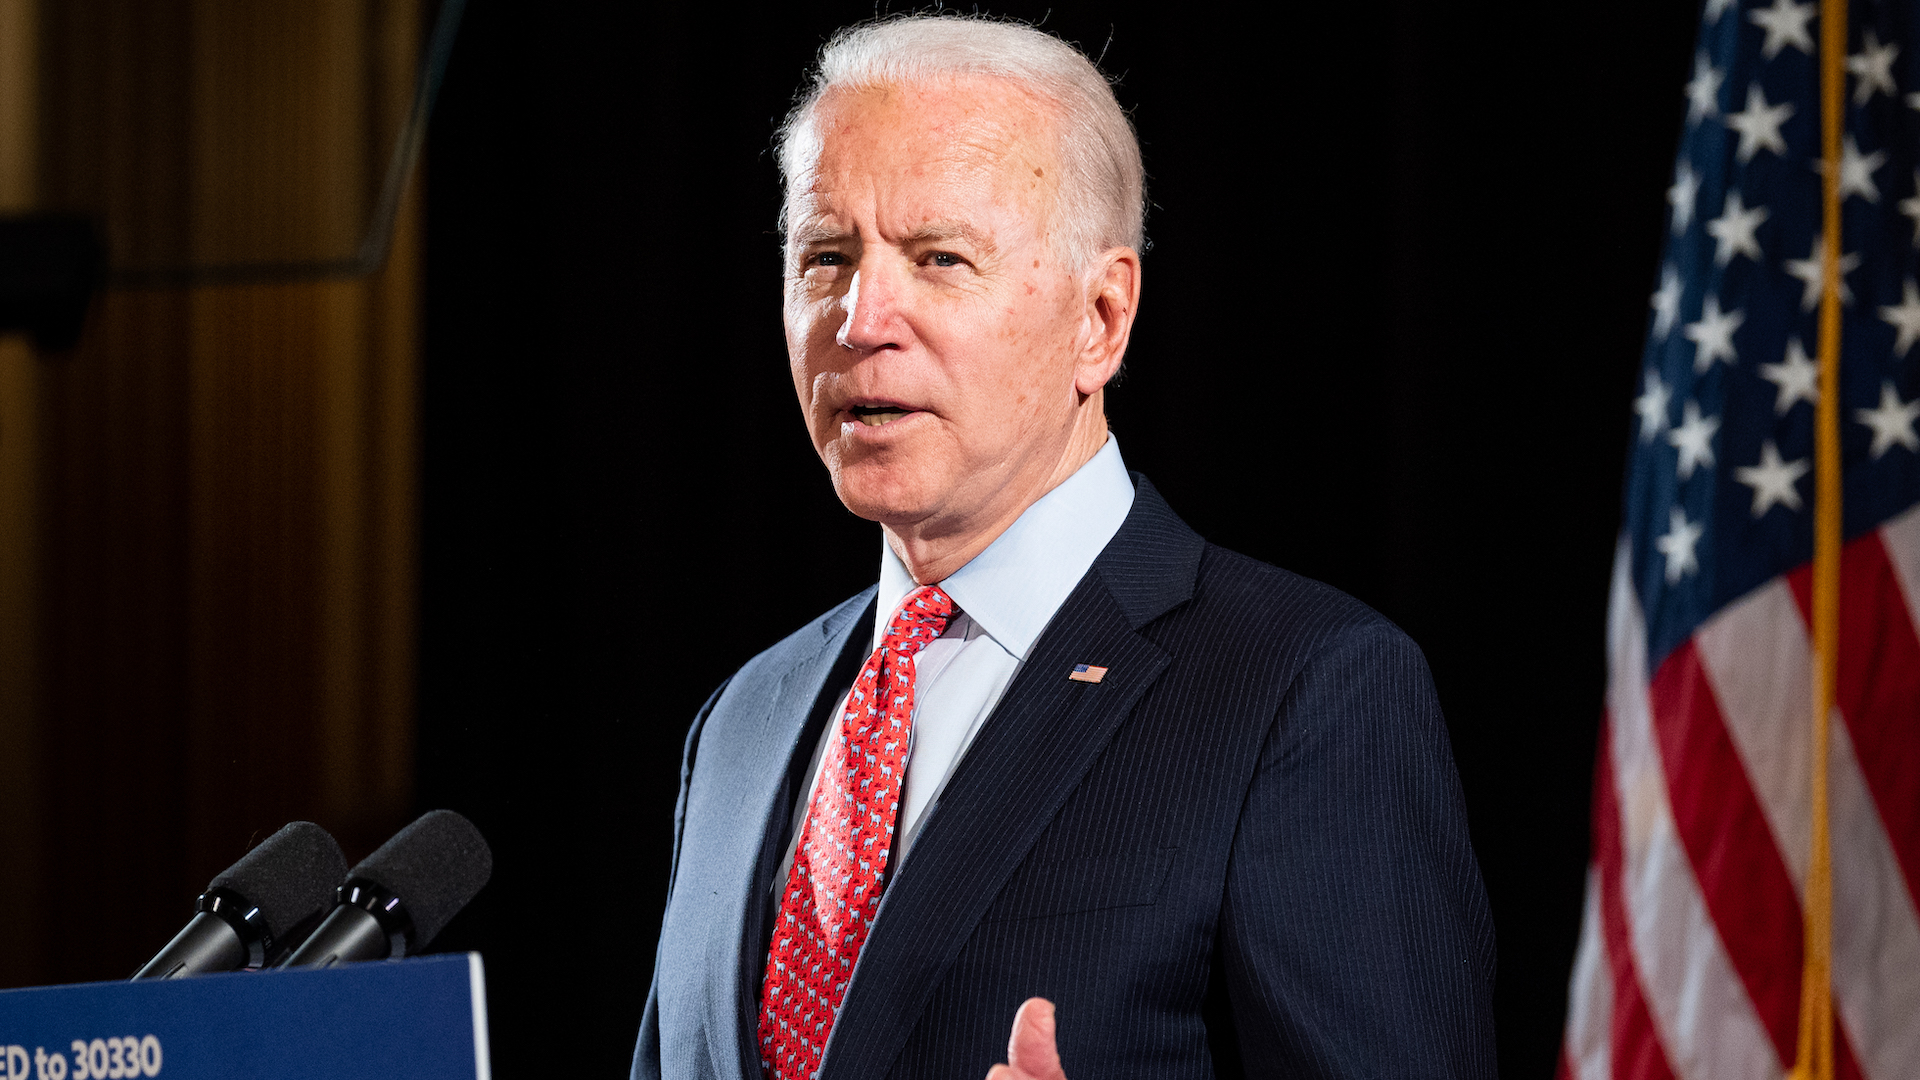 Joe Biden Walks Back Controversial 'You Ain't Black' Comment: 'I Shouldn't Have Been Such a Wise Guy'